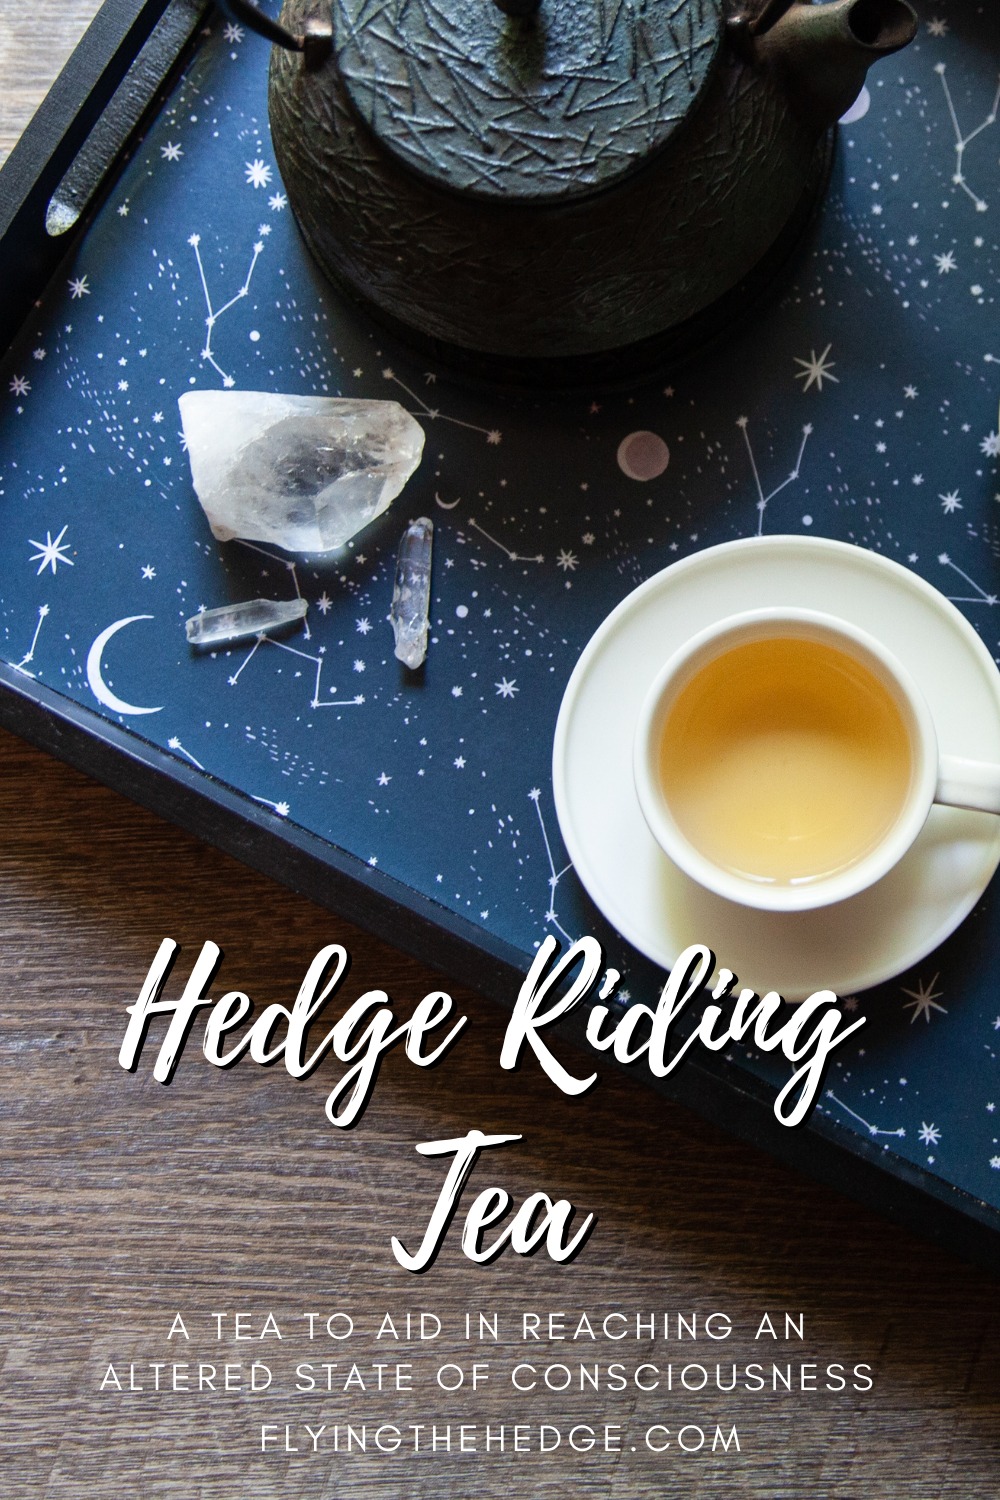 hedge riding, altered state of consciousness, shamanism, hedgewitch, hedge witch, hedgecraft, astral travel, otherworld, trance, shamanic journey, tea, tea blend, spirit work, witchcraft, witch, witchy